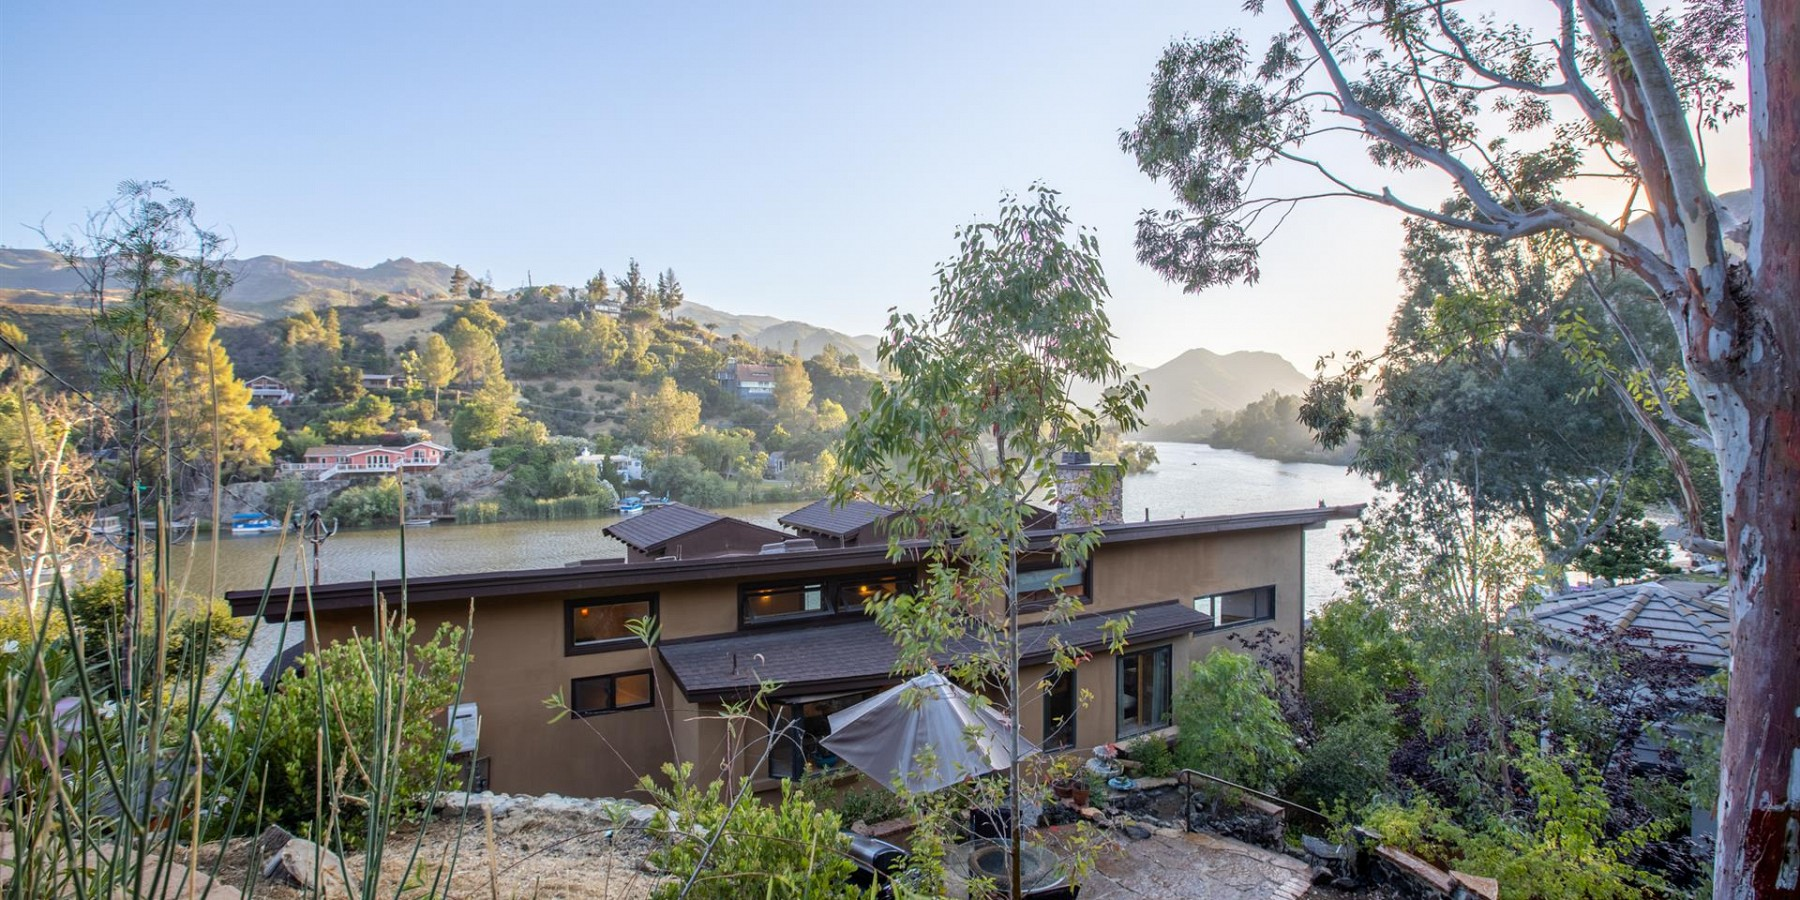 2106 East Lakeshore Dr., Agoura Hills, CA 91301